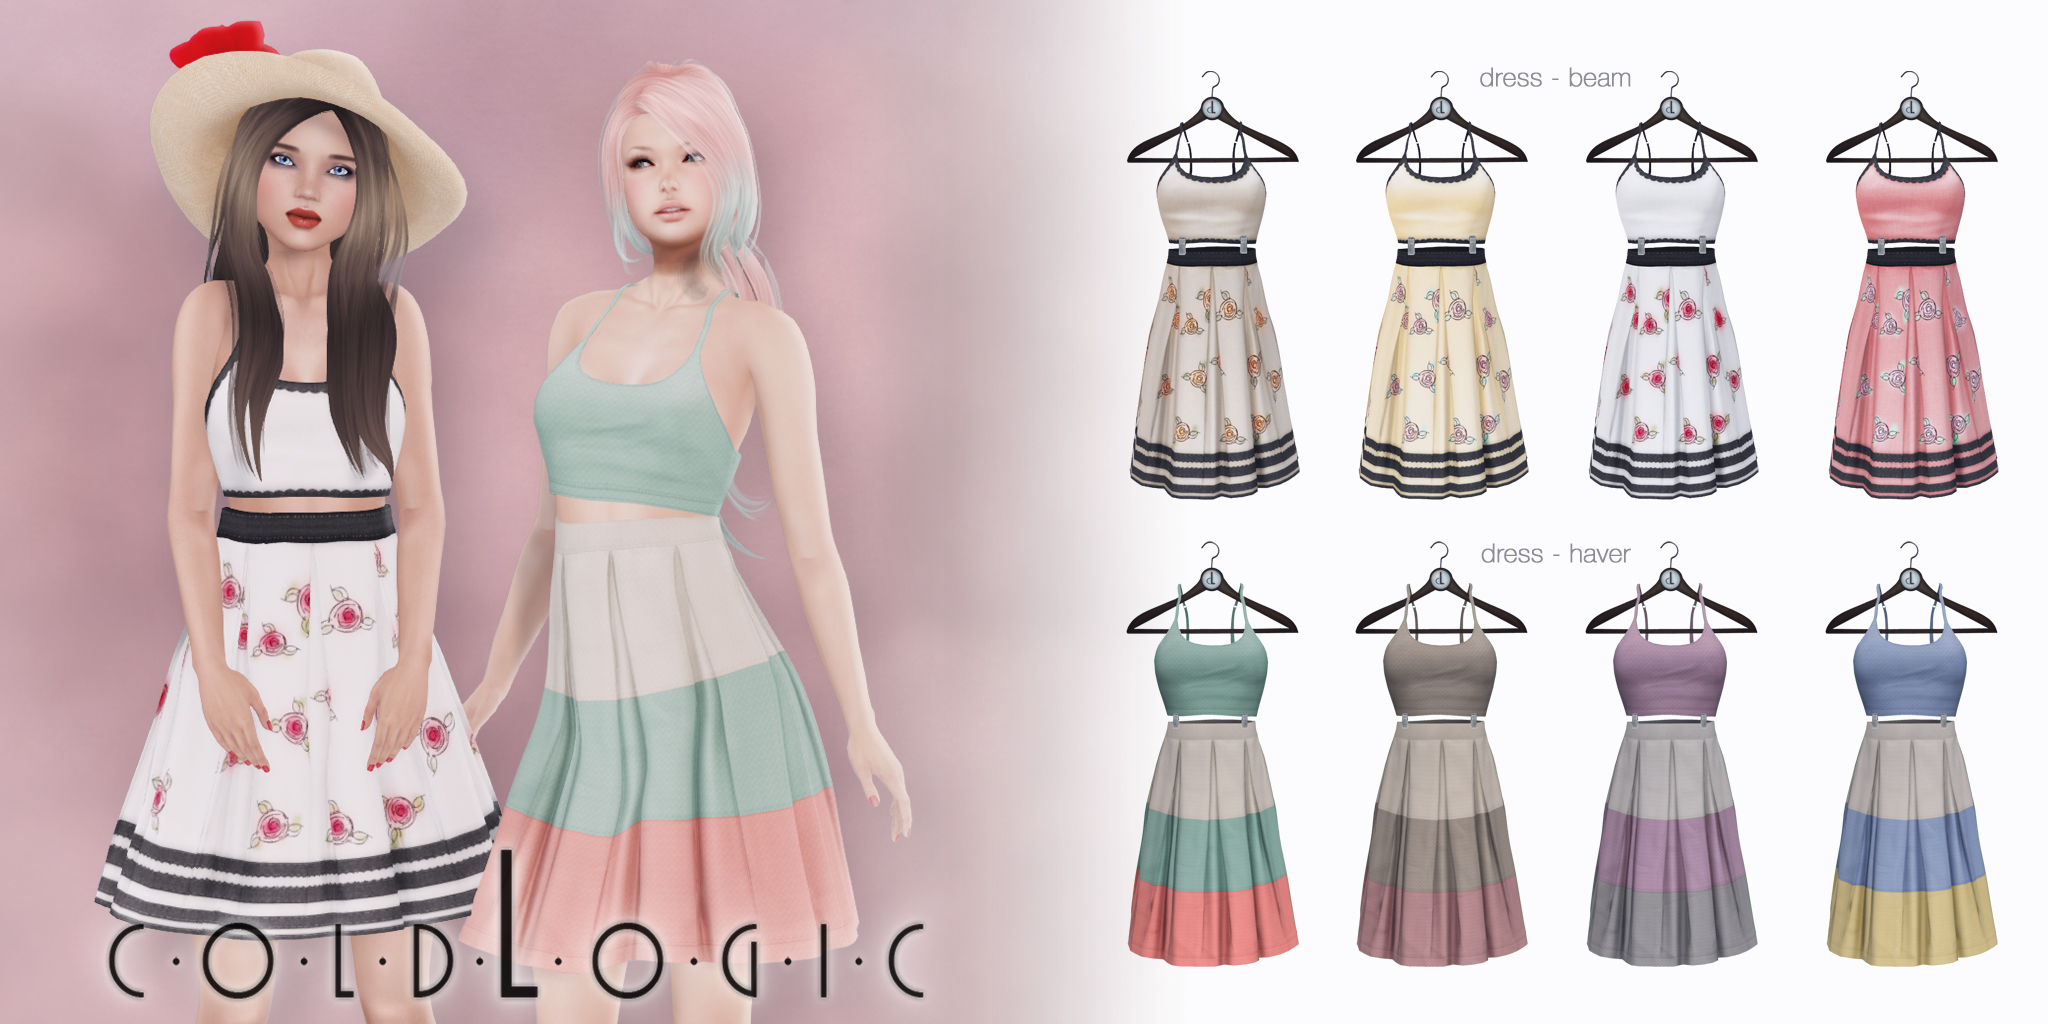 coldLogic dress - beam & haver